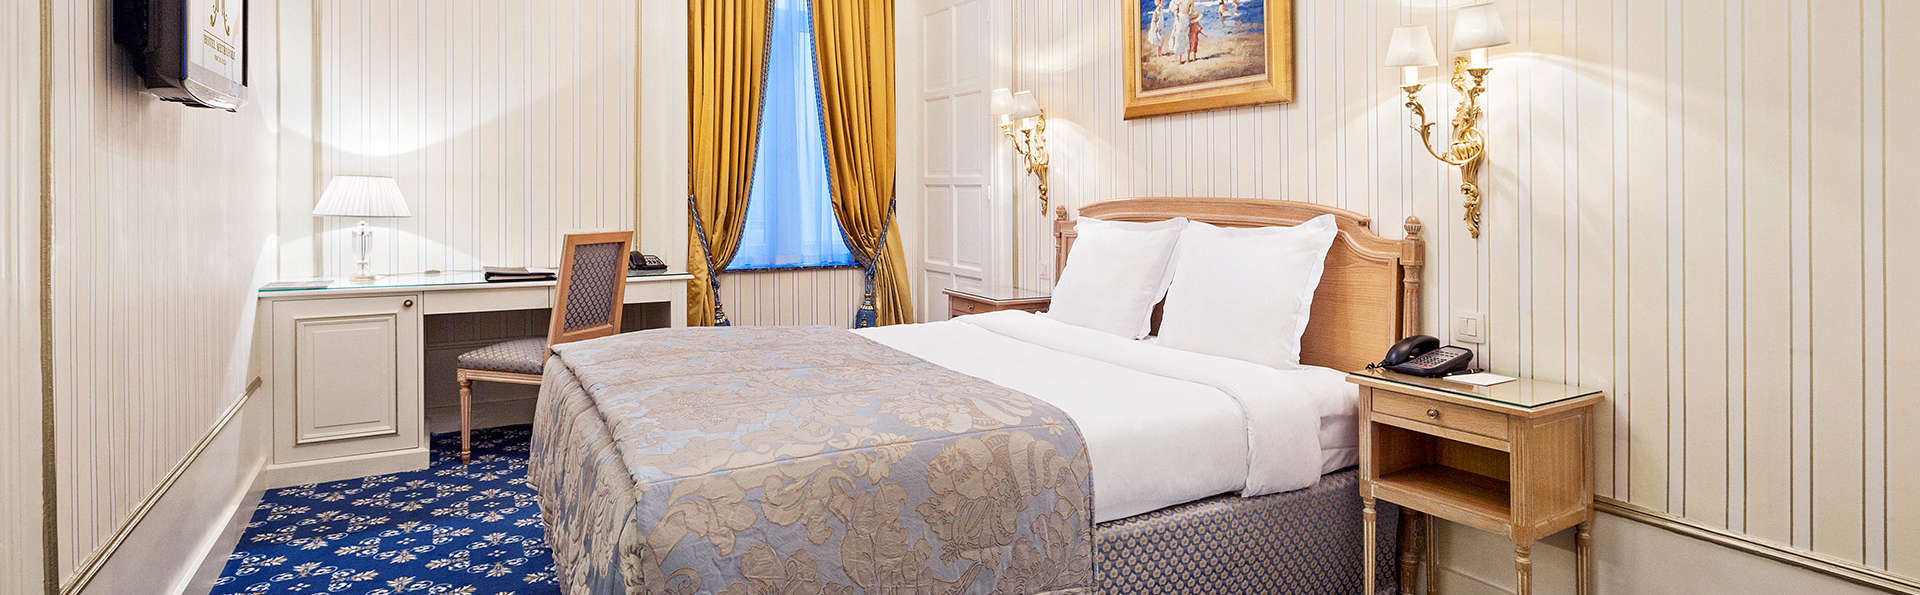 Hotel Metropole - EDIT_sessionstudio.jpg